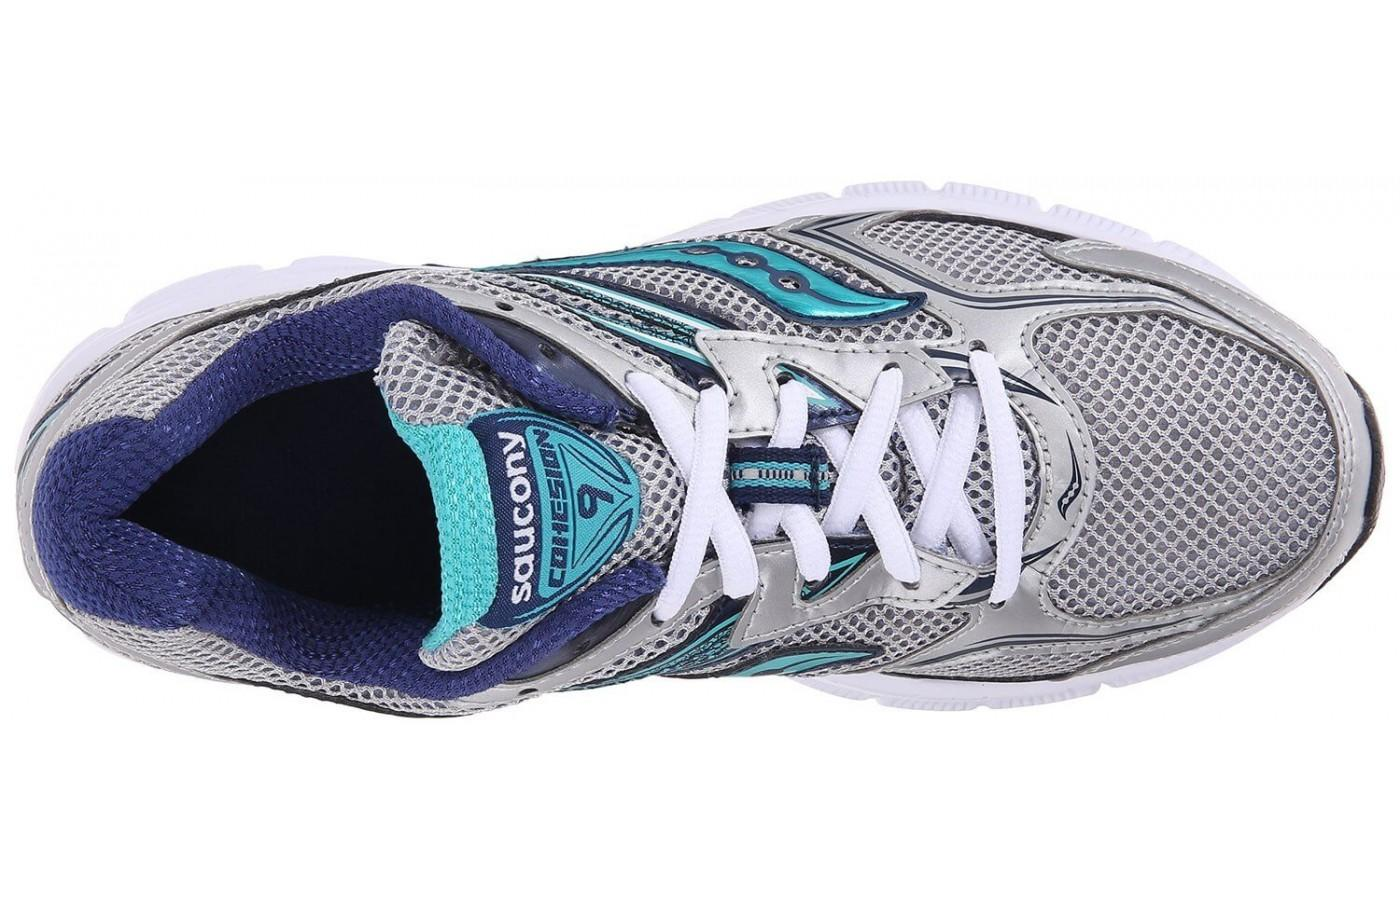 aecd8dd4df539 Buy buy saucony   Up to OFF71% Discounted